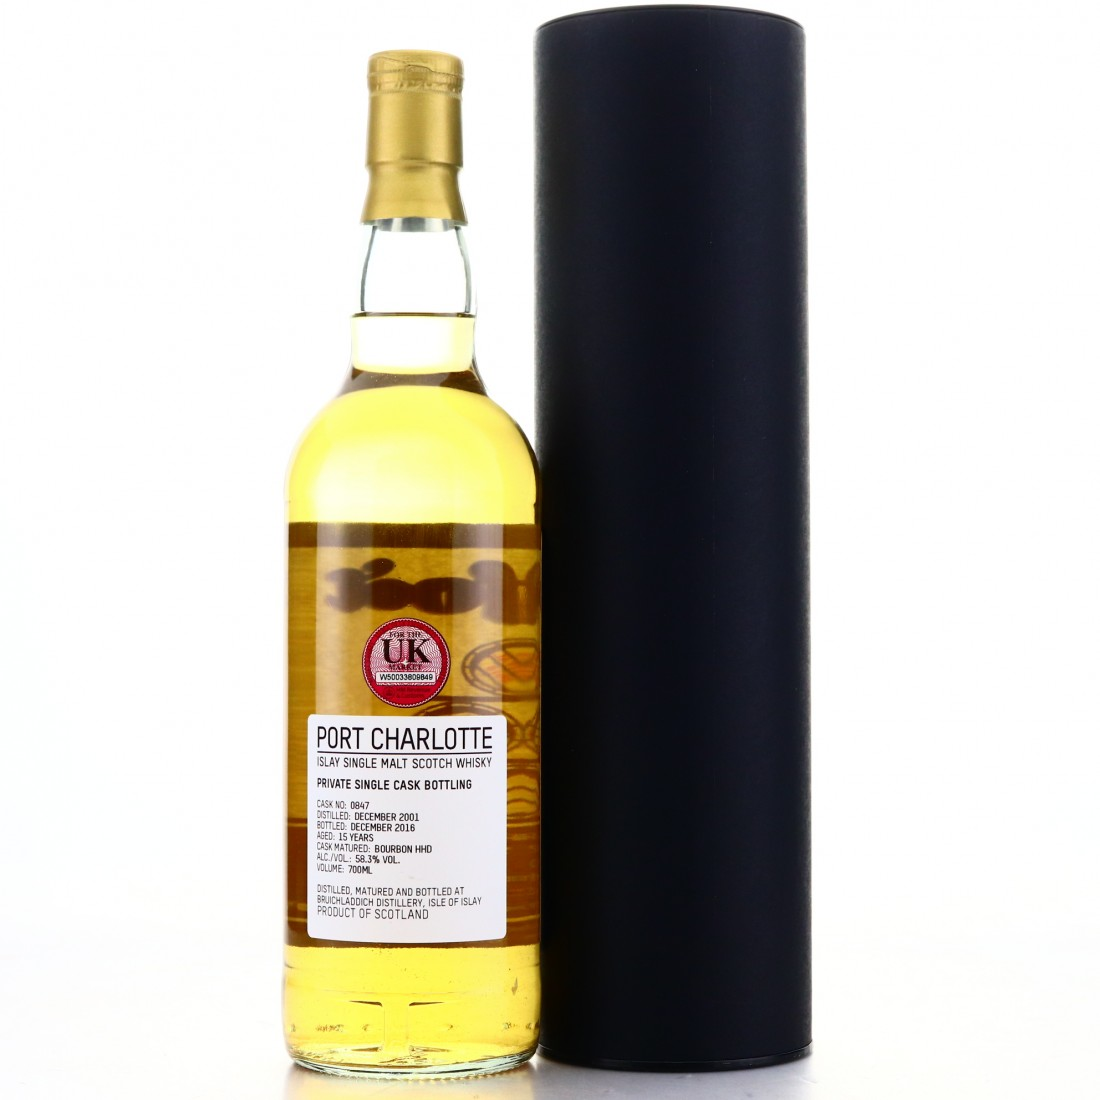 Port Charlotte 2001 Private Cask 15 Year Old